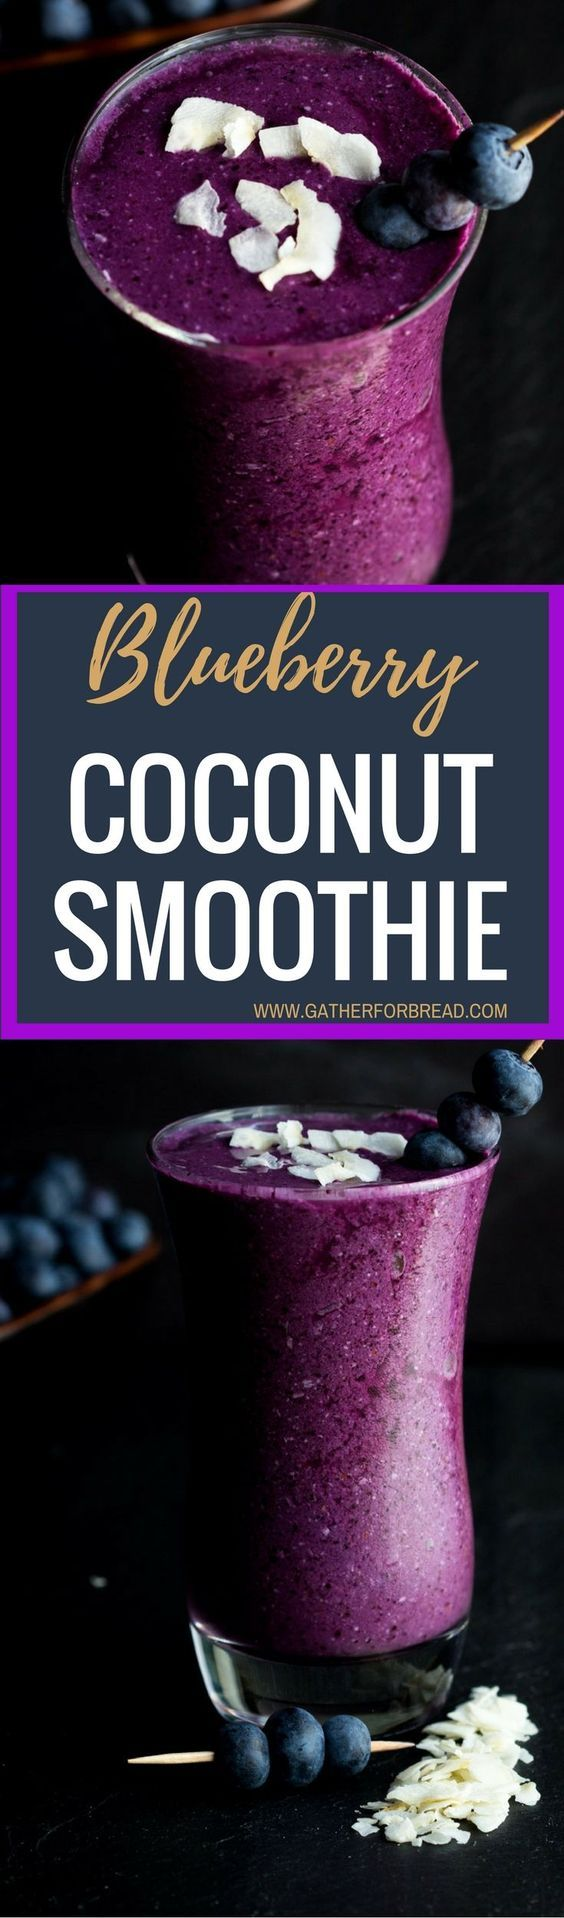 A smooth, creamy blueberry smoothie made with coconut milk, flakes and antioxidants for a fresh way to start your day.